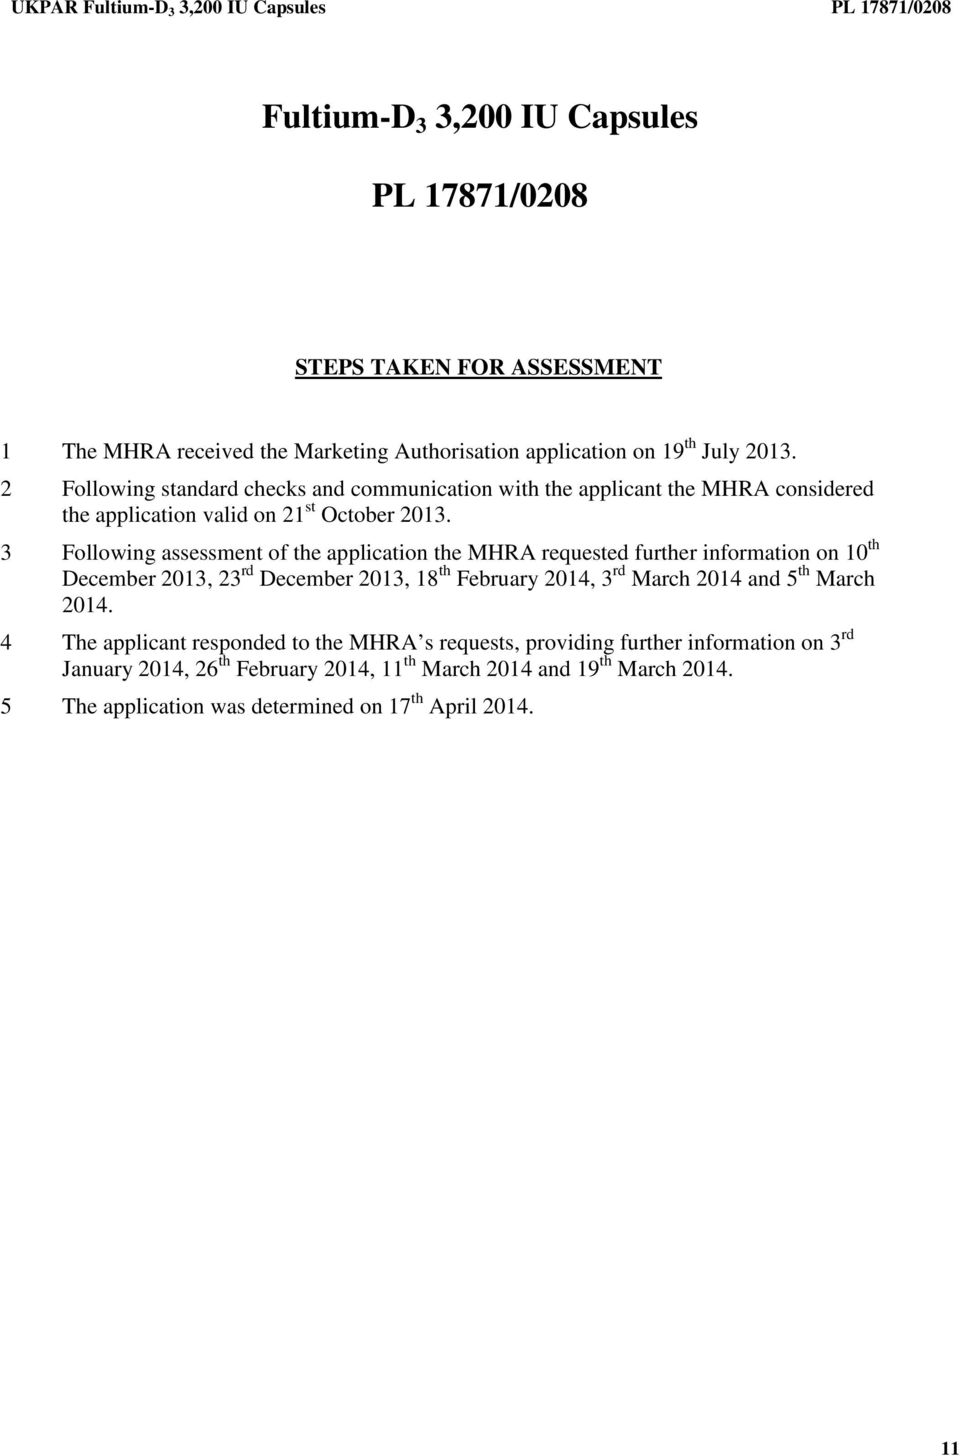 3 Following assessment of the application the MHRA requested further information on 10 th December 2013, 23 rd December 2013, 18 th February 2014, 3 rd March 2014 and 5